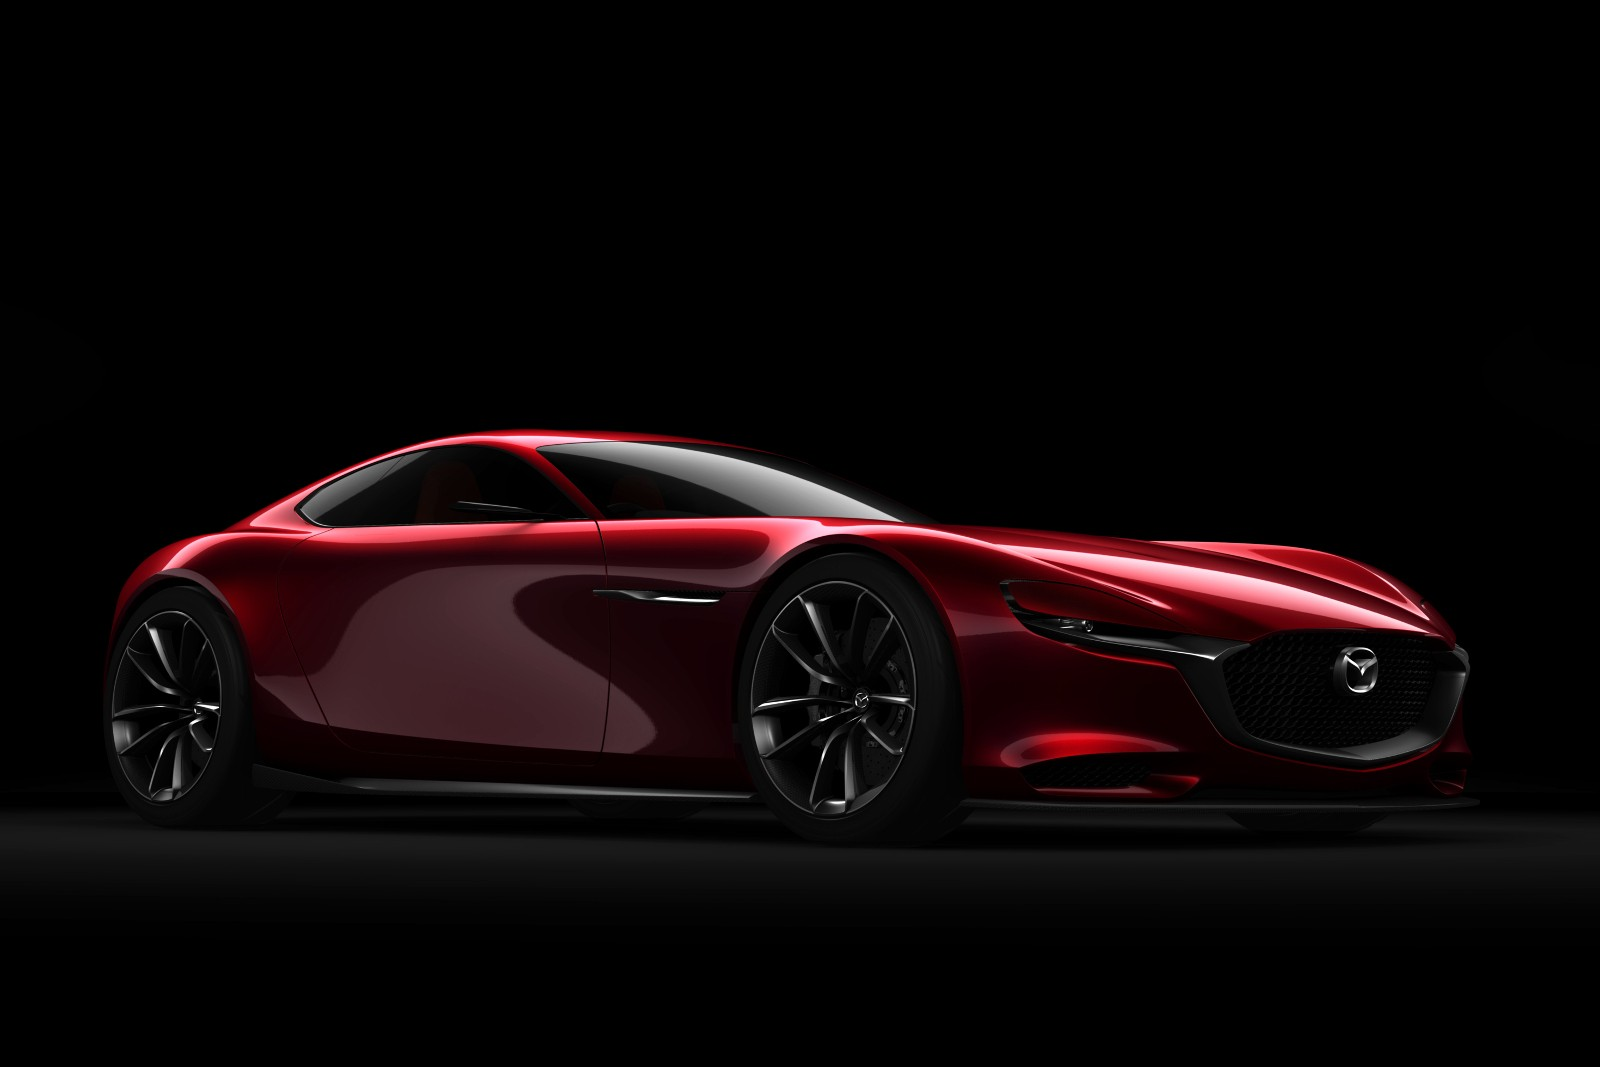 mazda is committed to skyactiv-r engine and rx-9 rotary sports car